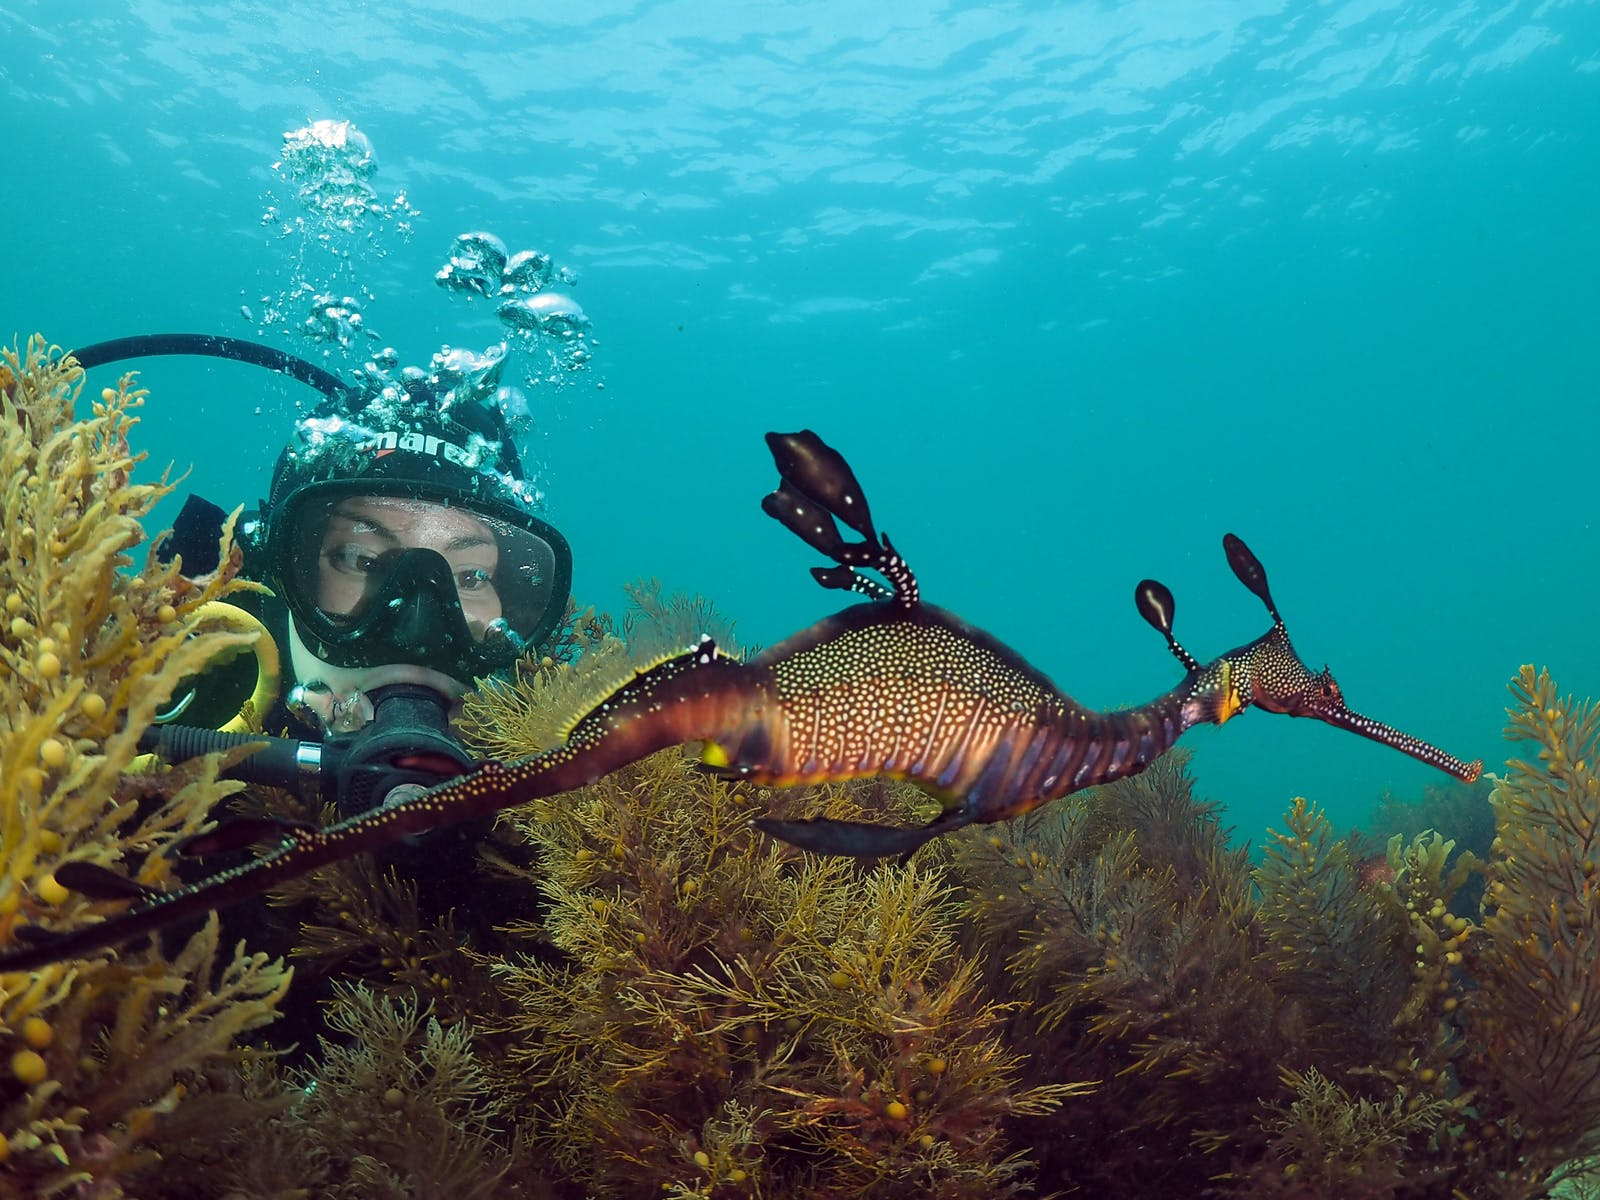 Scuba Dive with Seadragons